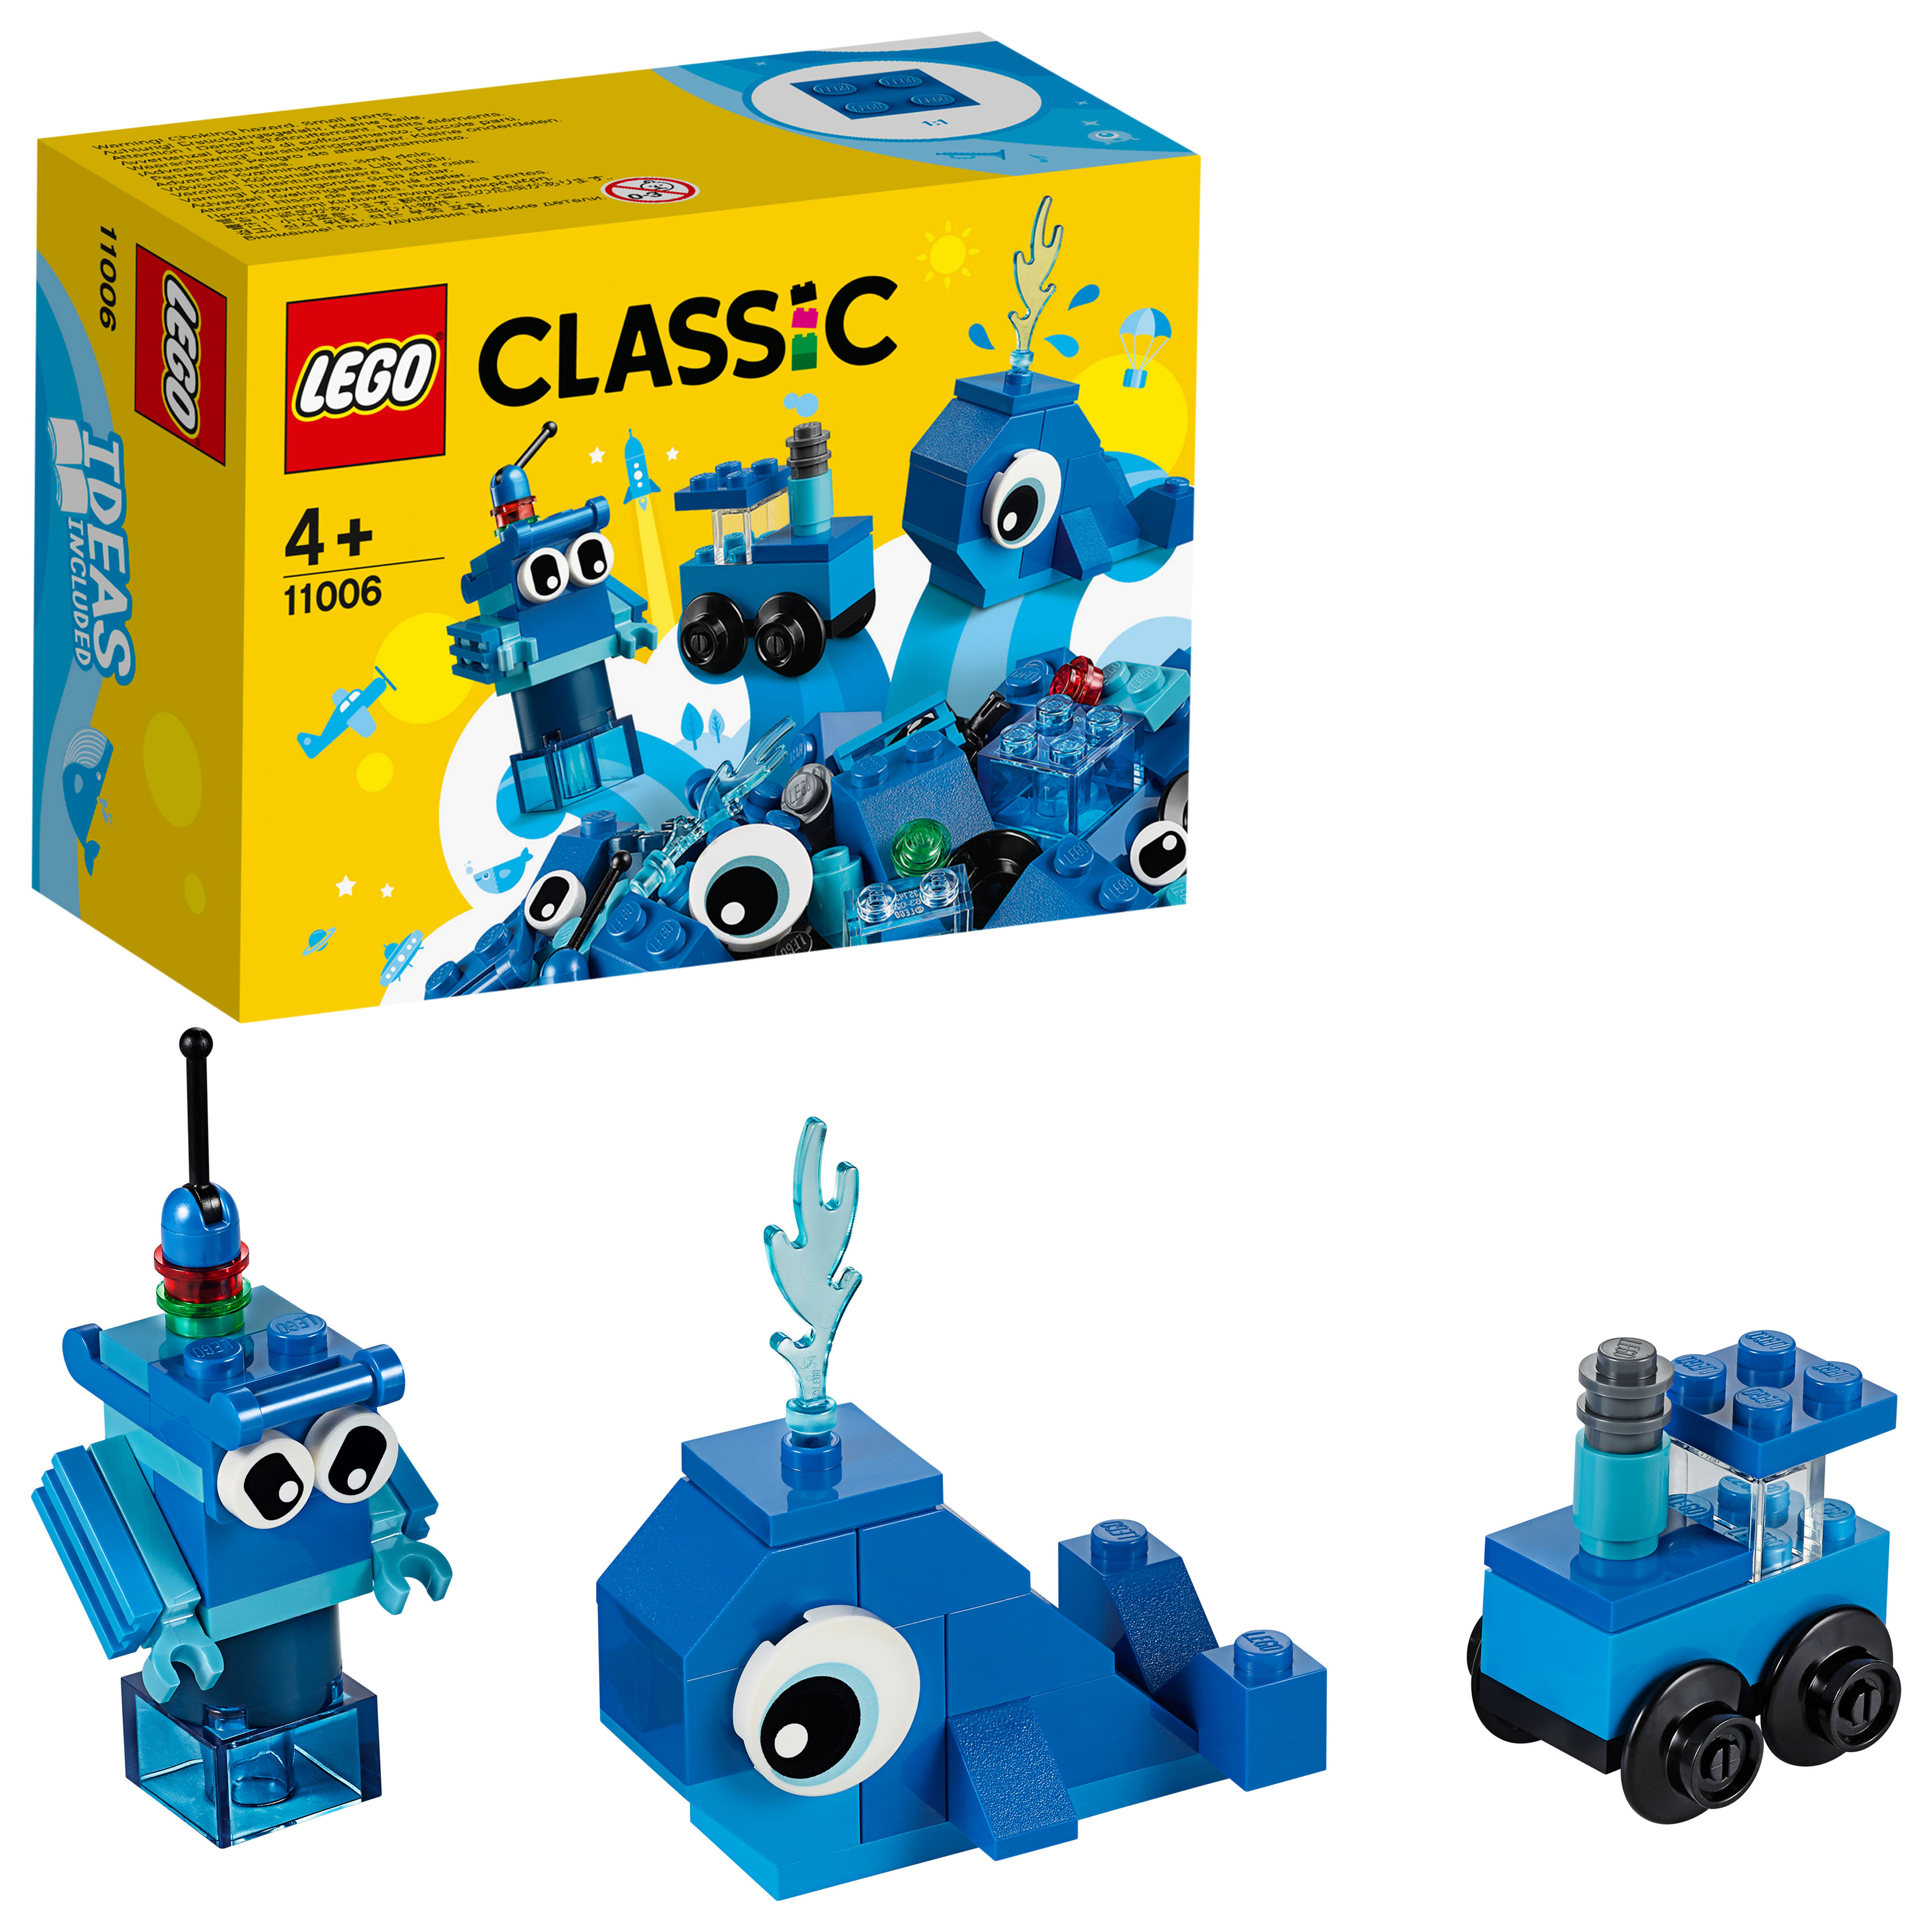 LEGO Classic Bricks and Gears 10712 creative fun toy 5 years plus imagination